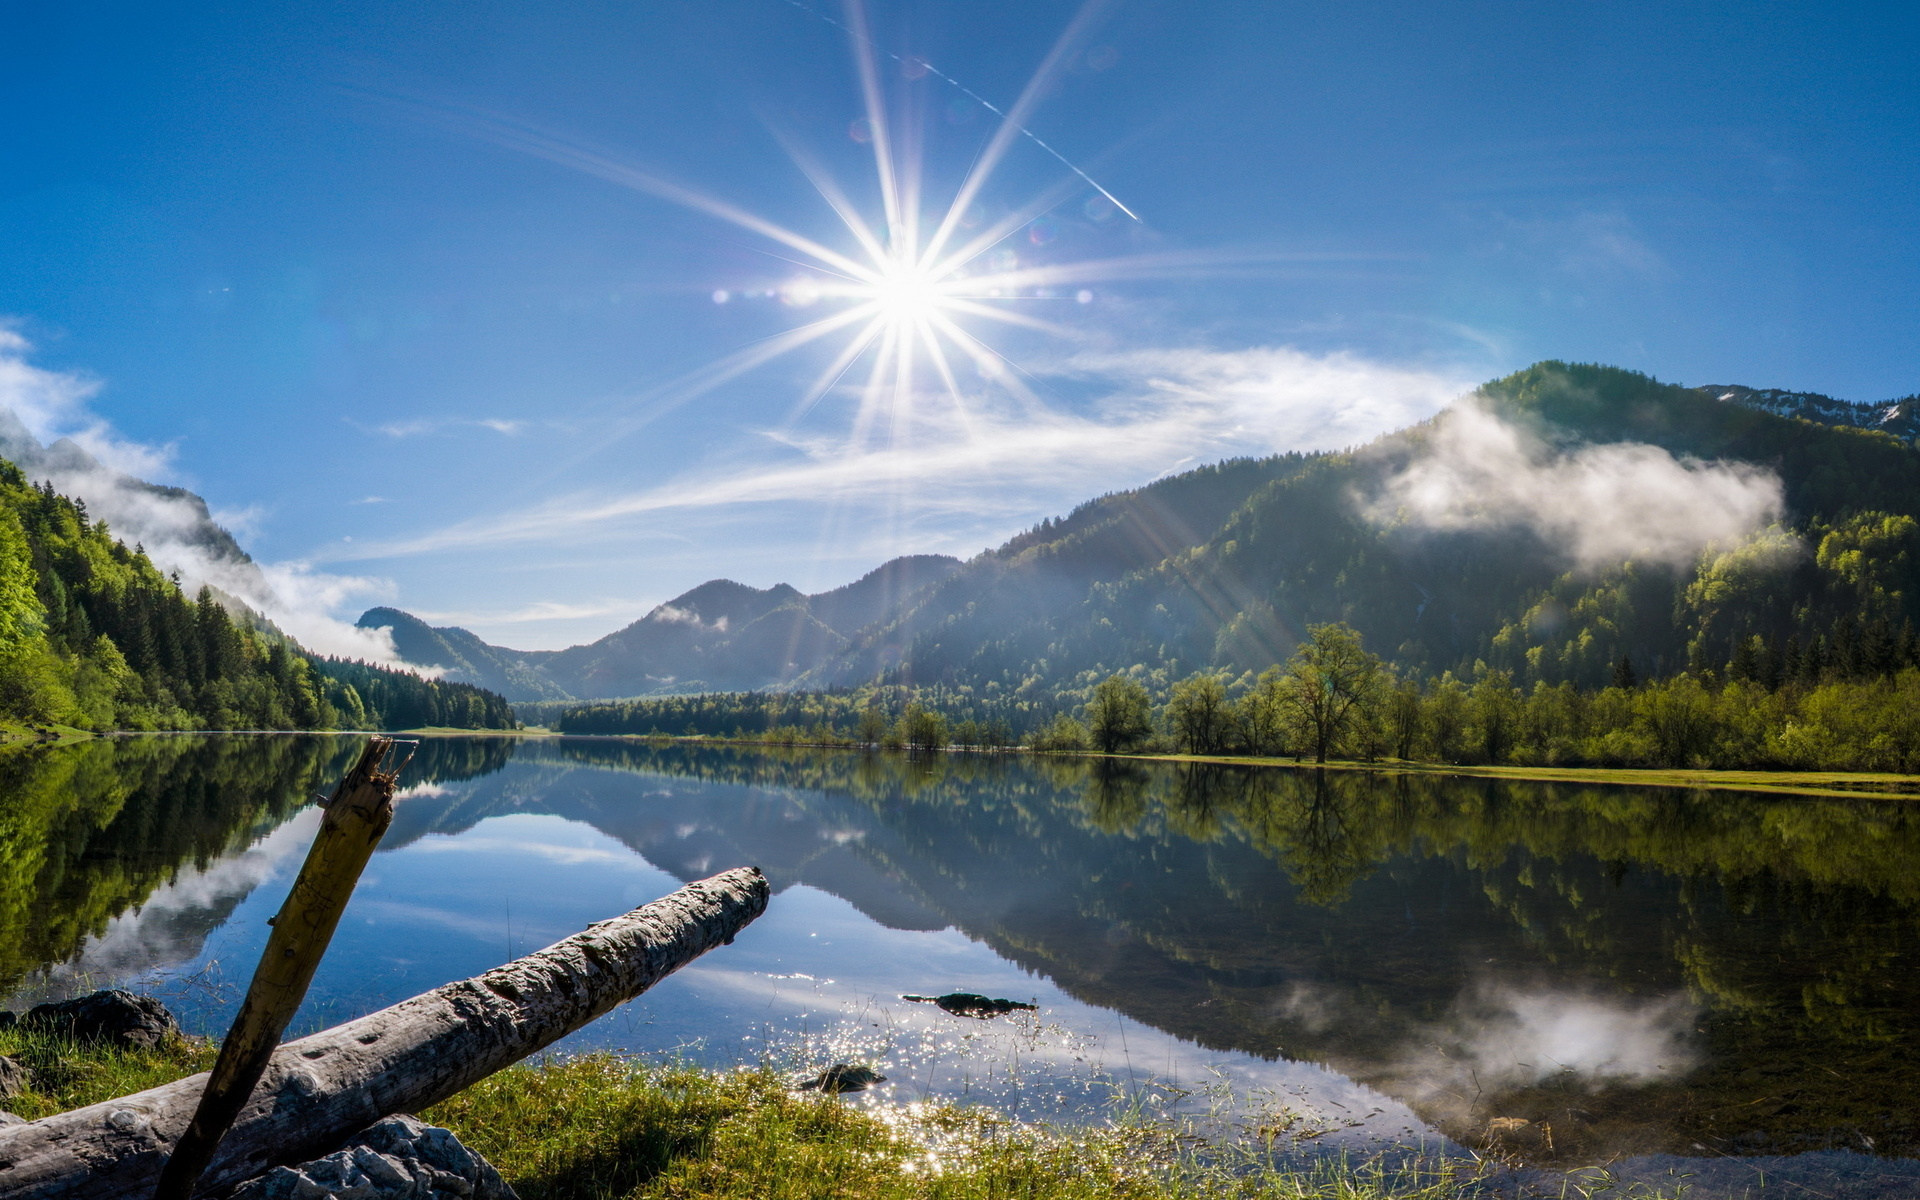 download Summer in mountains 1920 x 1200 Nature Photography 1920x1200